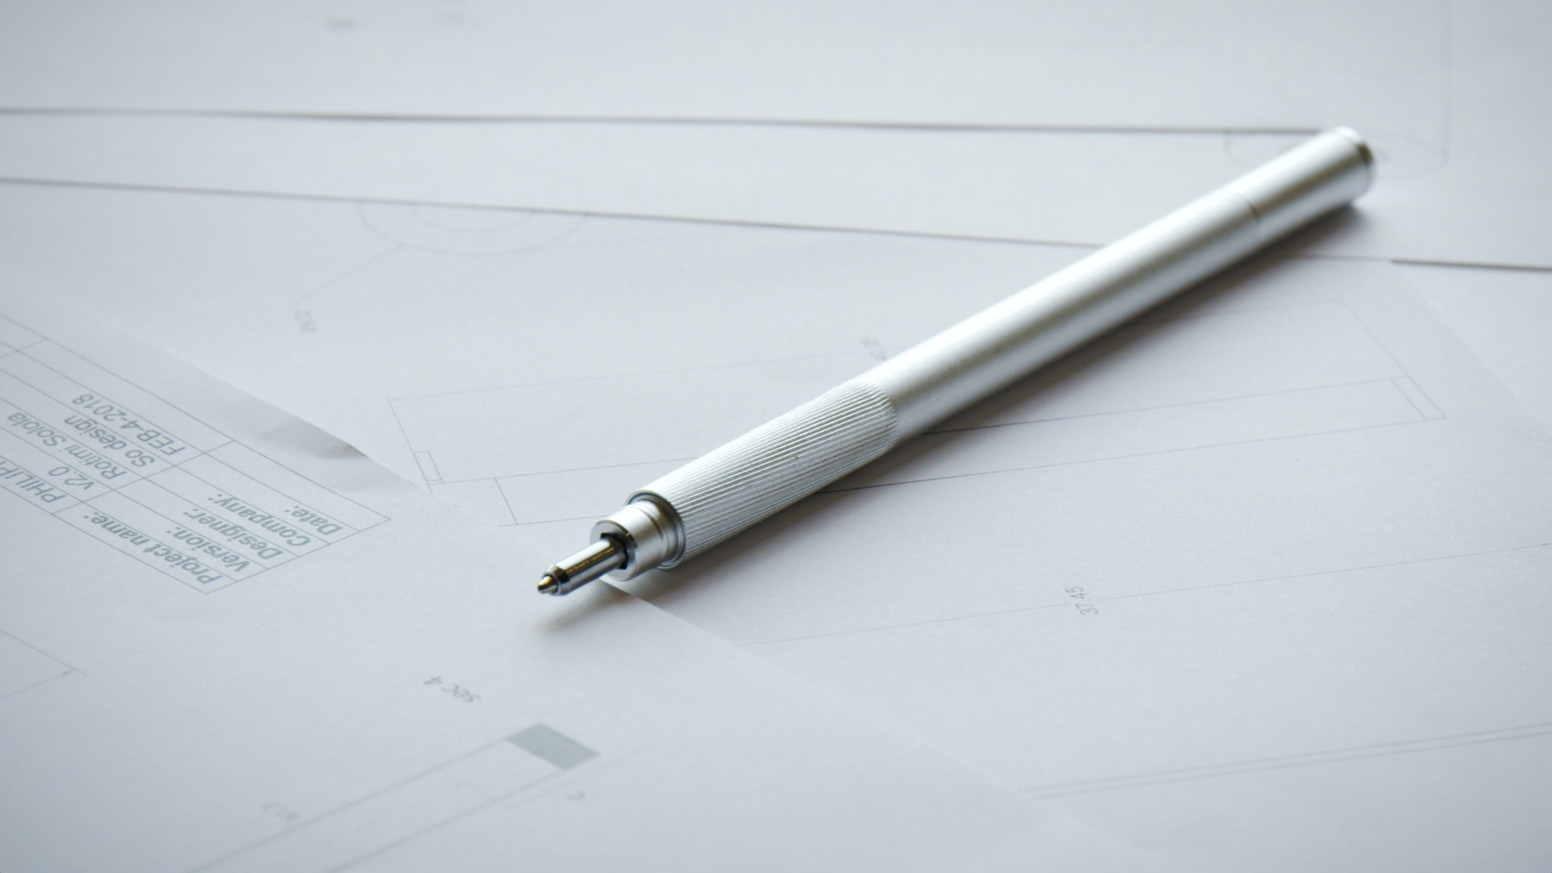 Alt pen is a pen with the secondary function of a precision tool